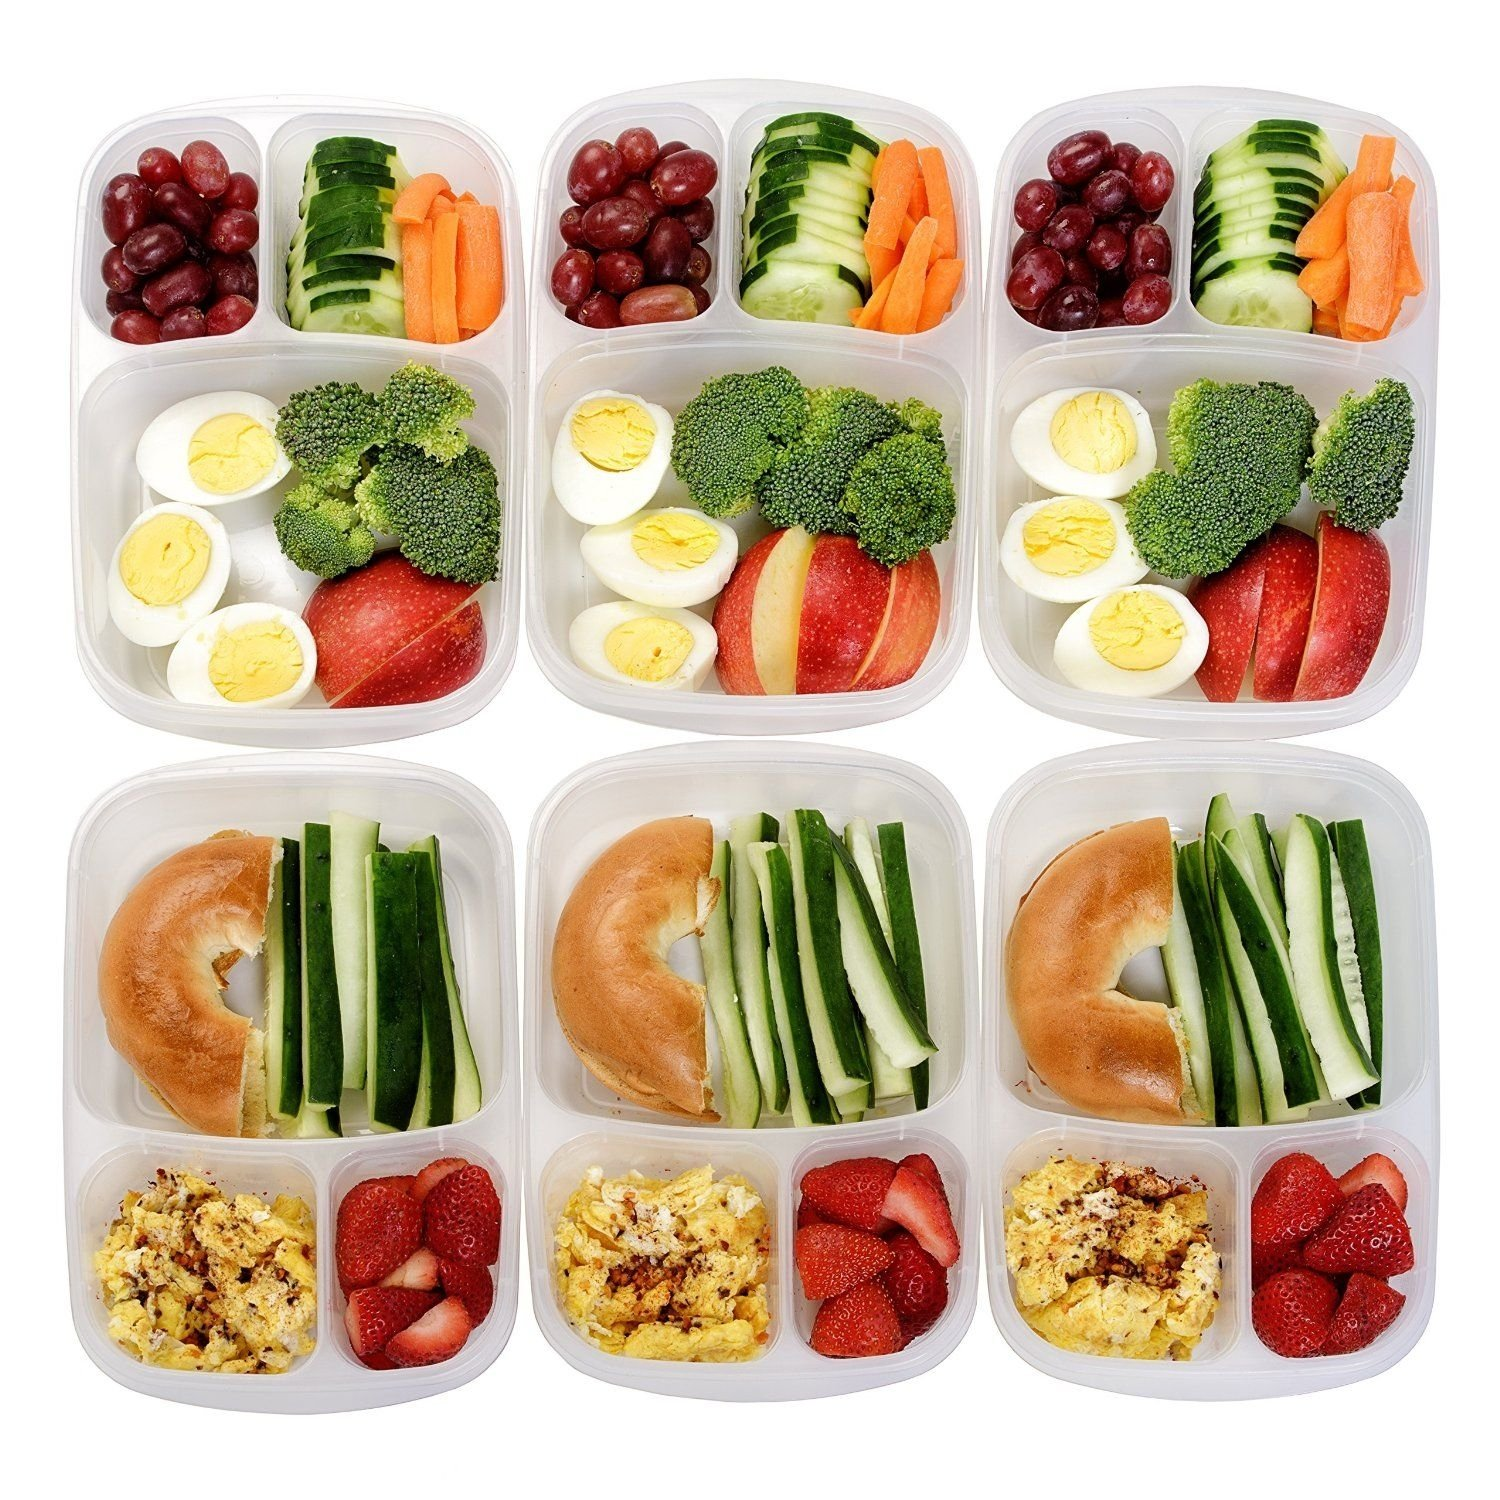 13 make ahead meals for healthy eating on the go | meals, snacks and